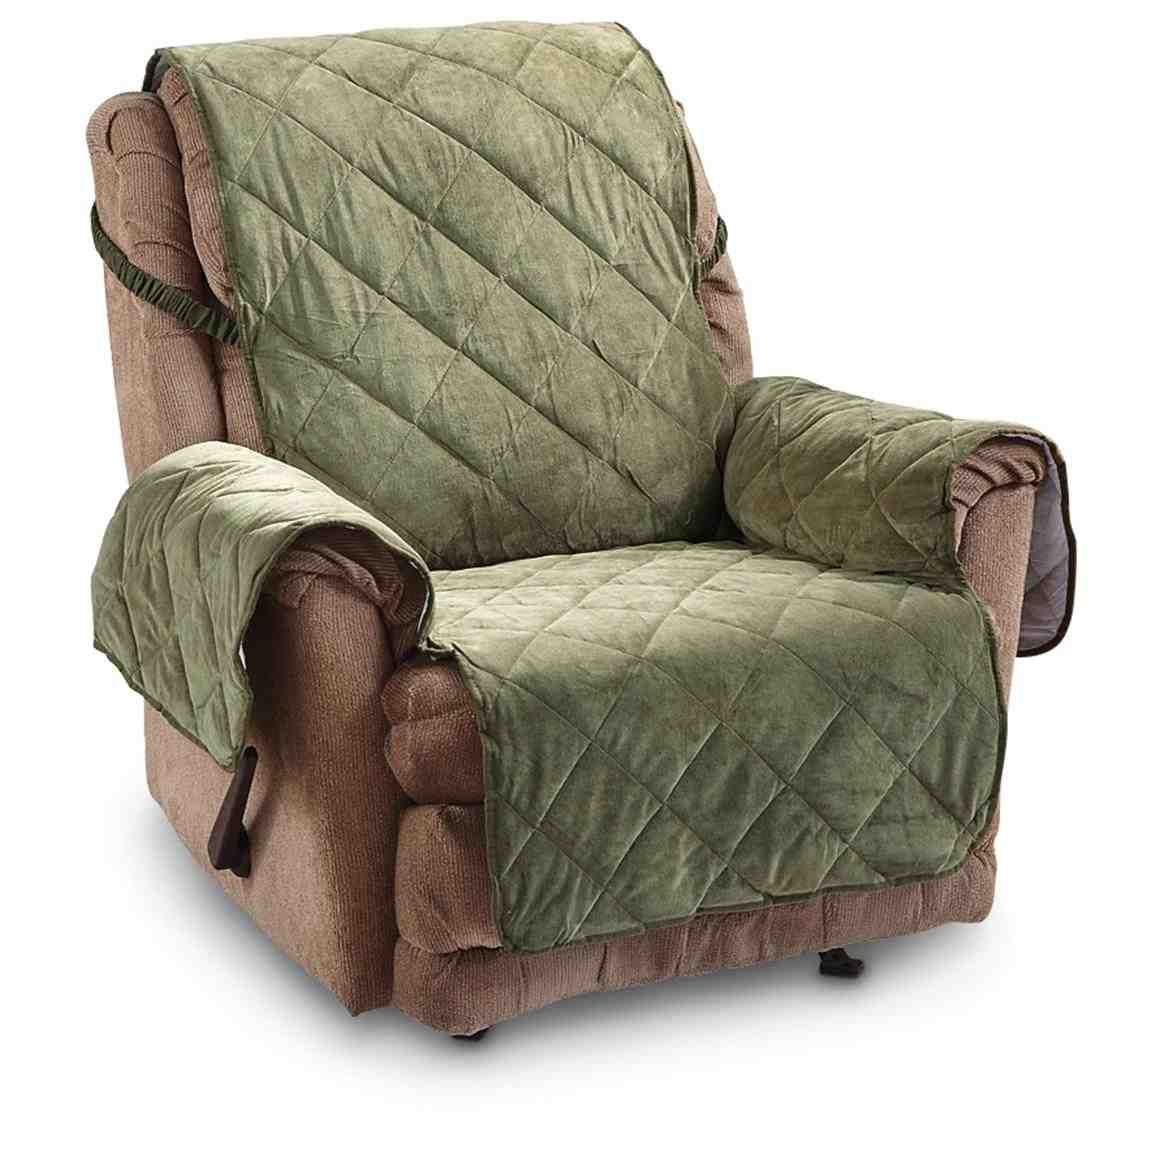 Recliner Covers Make an Old Chair Look New Again - Home Furniture Design  sc 1 st  Pinterest & Recliner Covers: Make an Old Chair Look New Again - Home Furniture ... islam-shia.org